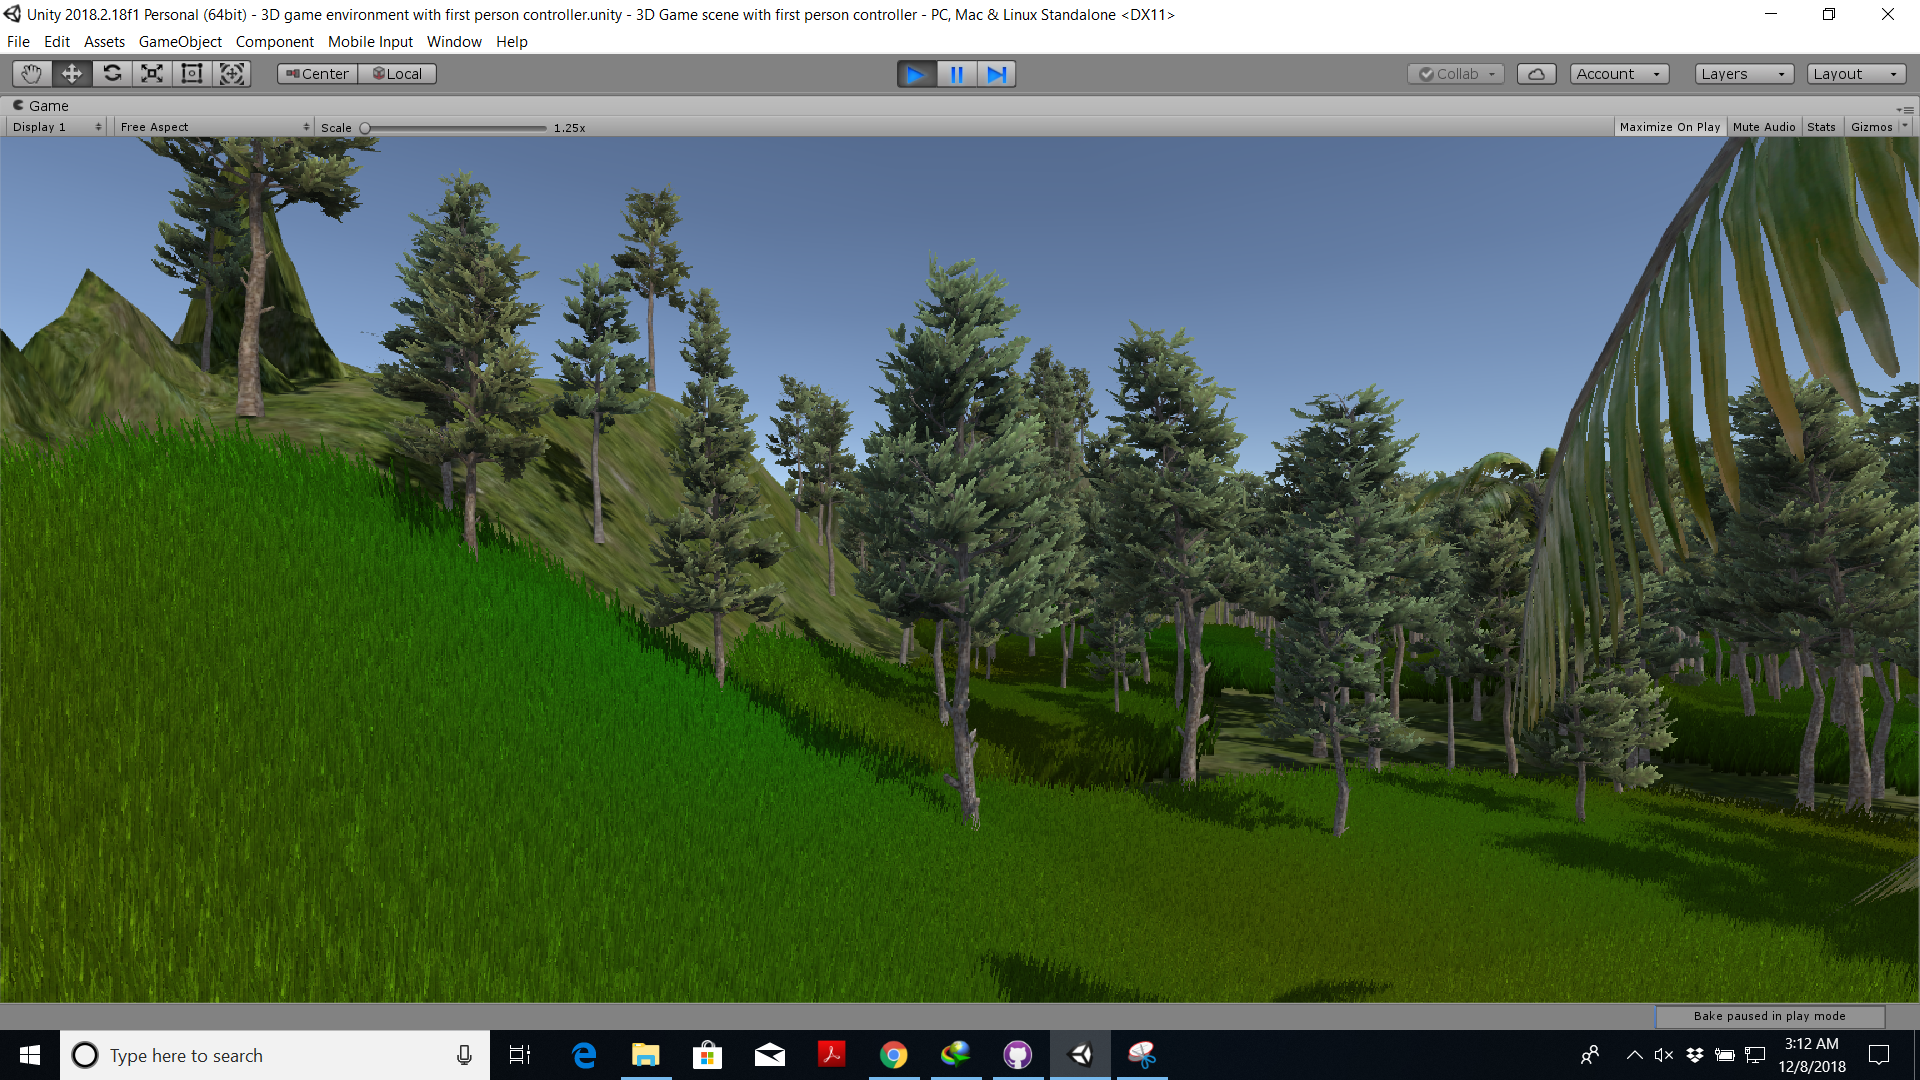 3D Game Scene With First Person Controller - UnityList